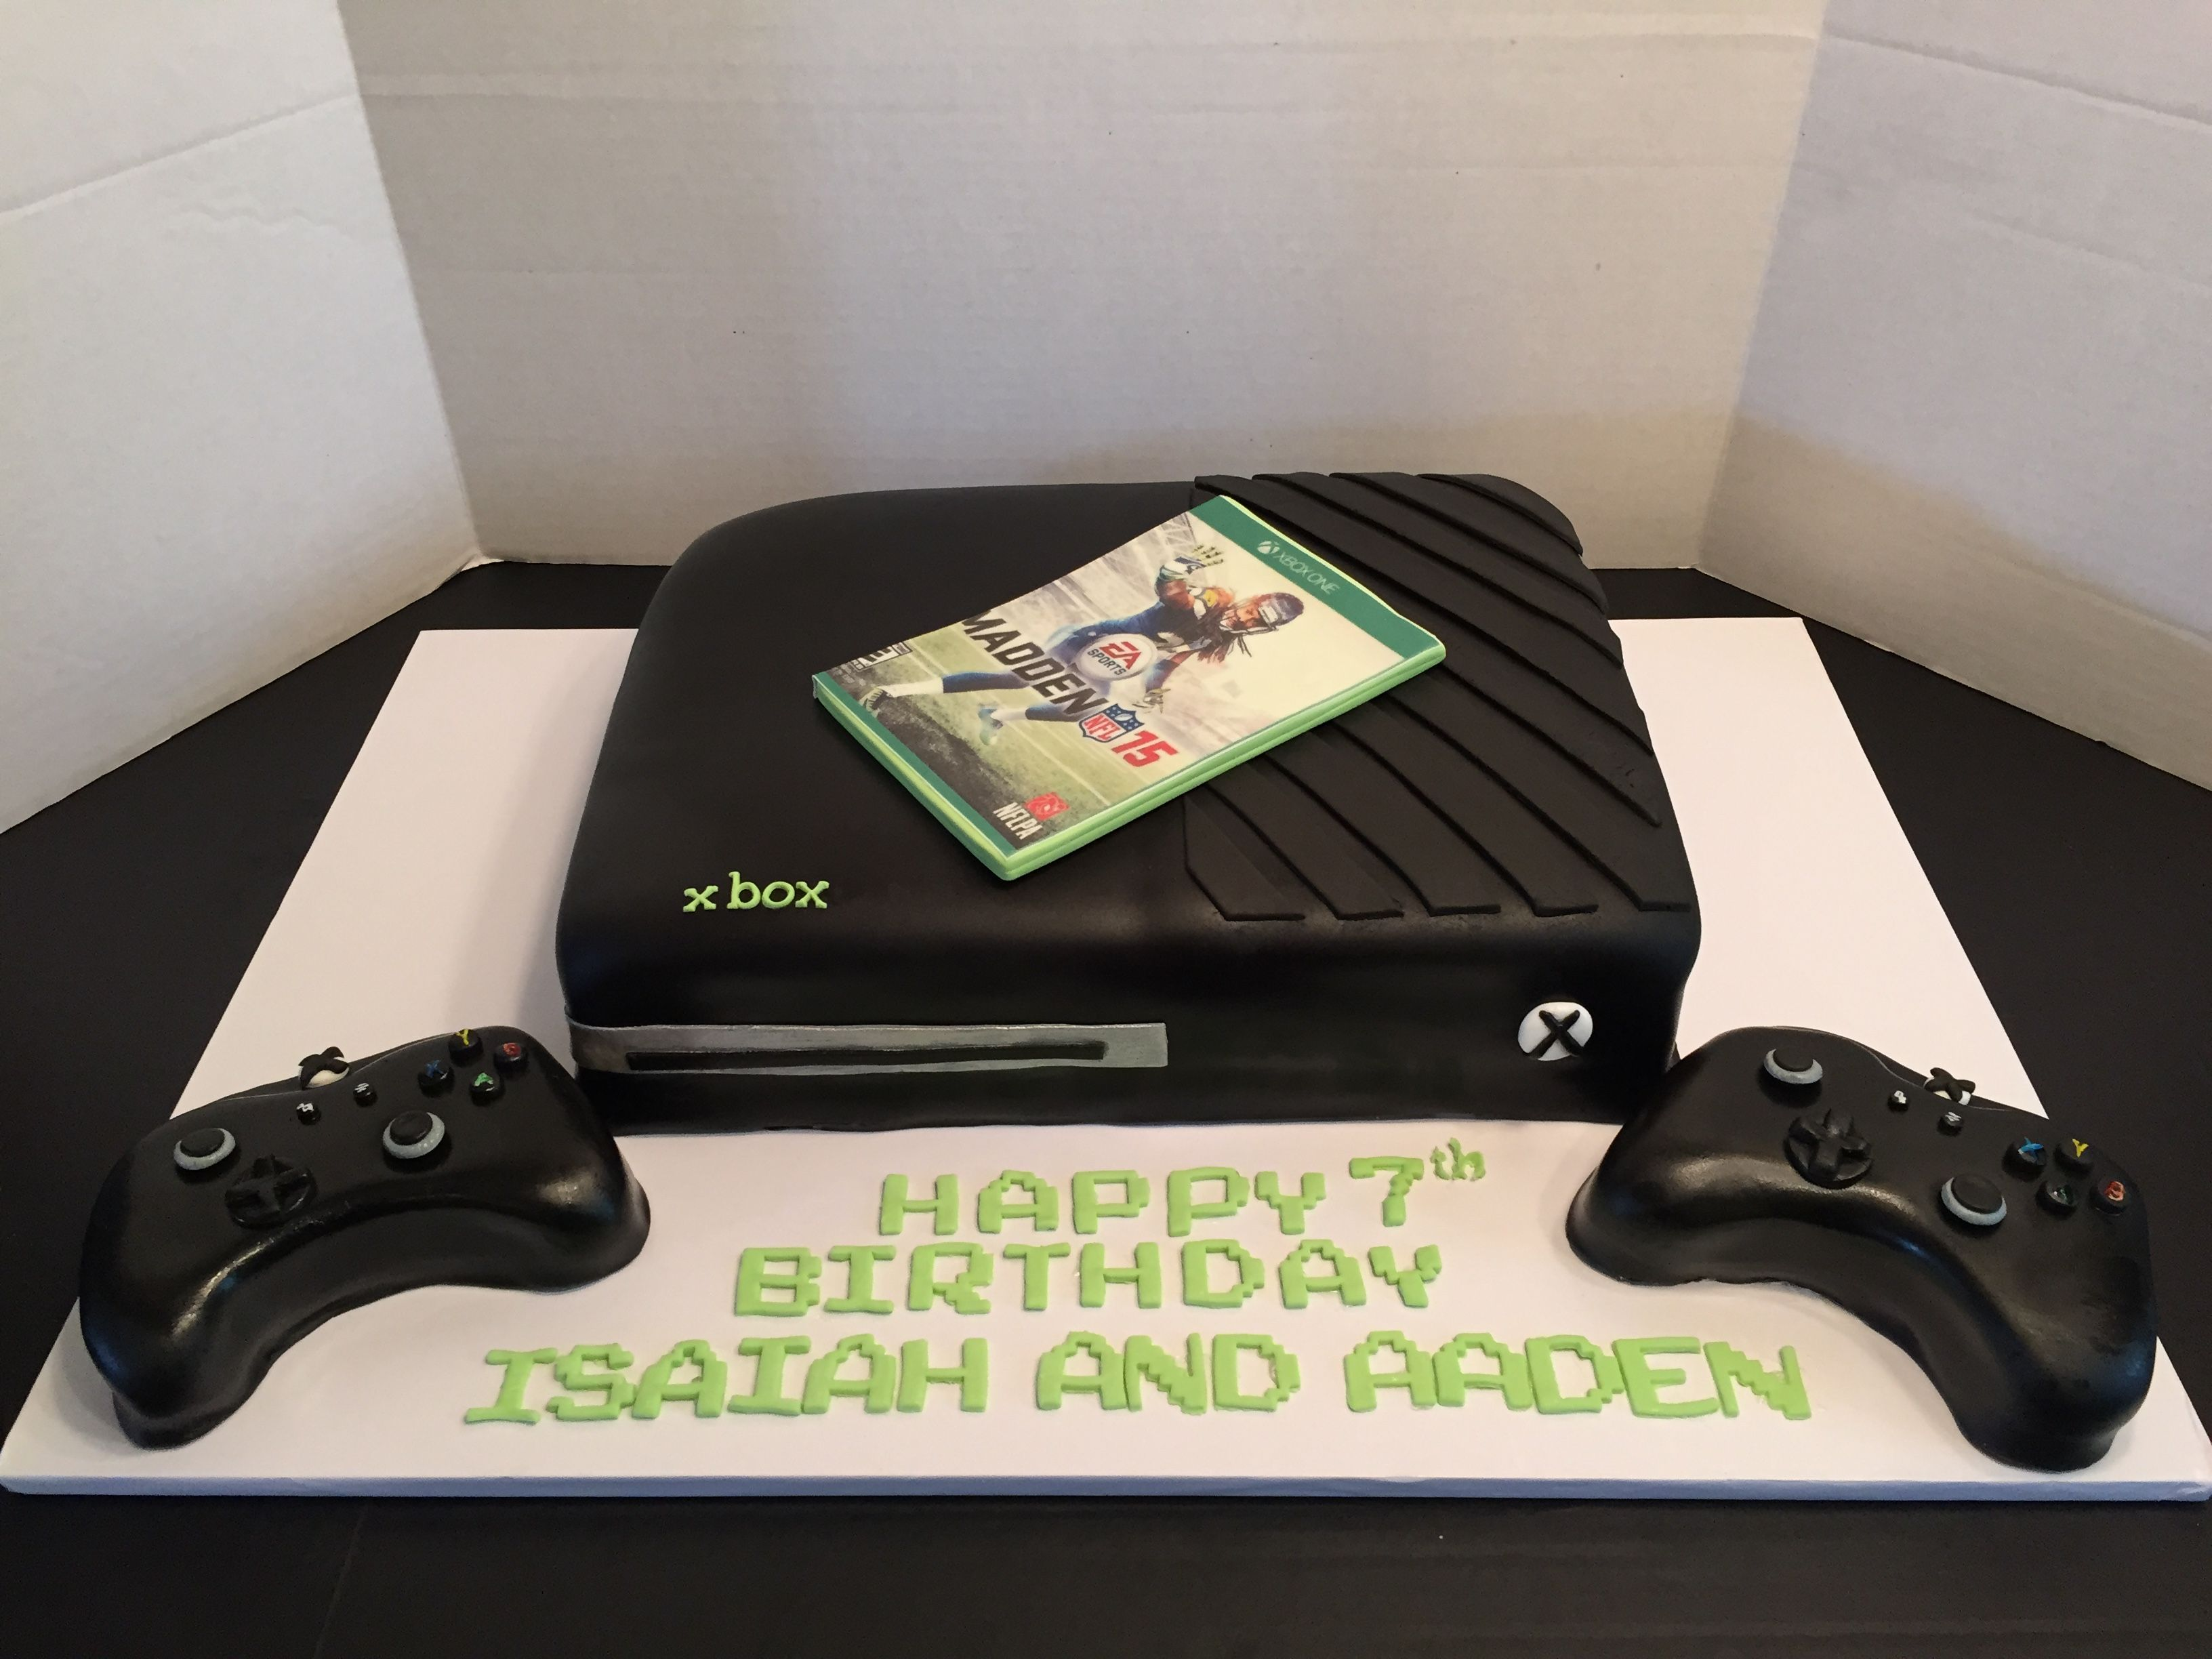 Birthday Cakes Xbox 360 ~ Baker s cakes and catering birthday cakes